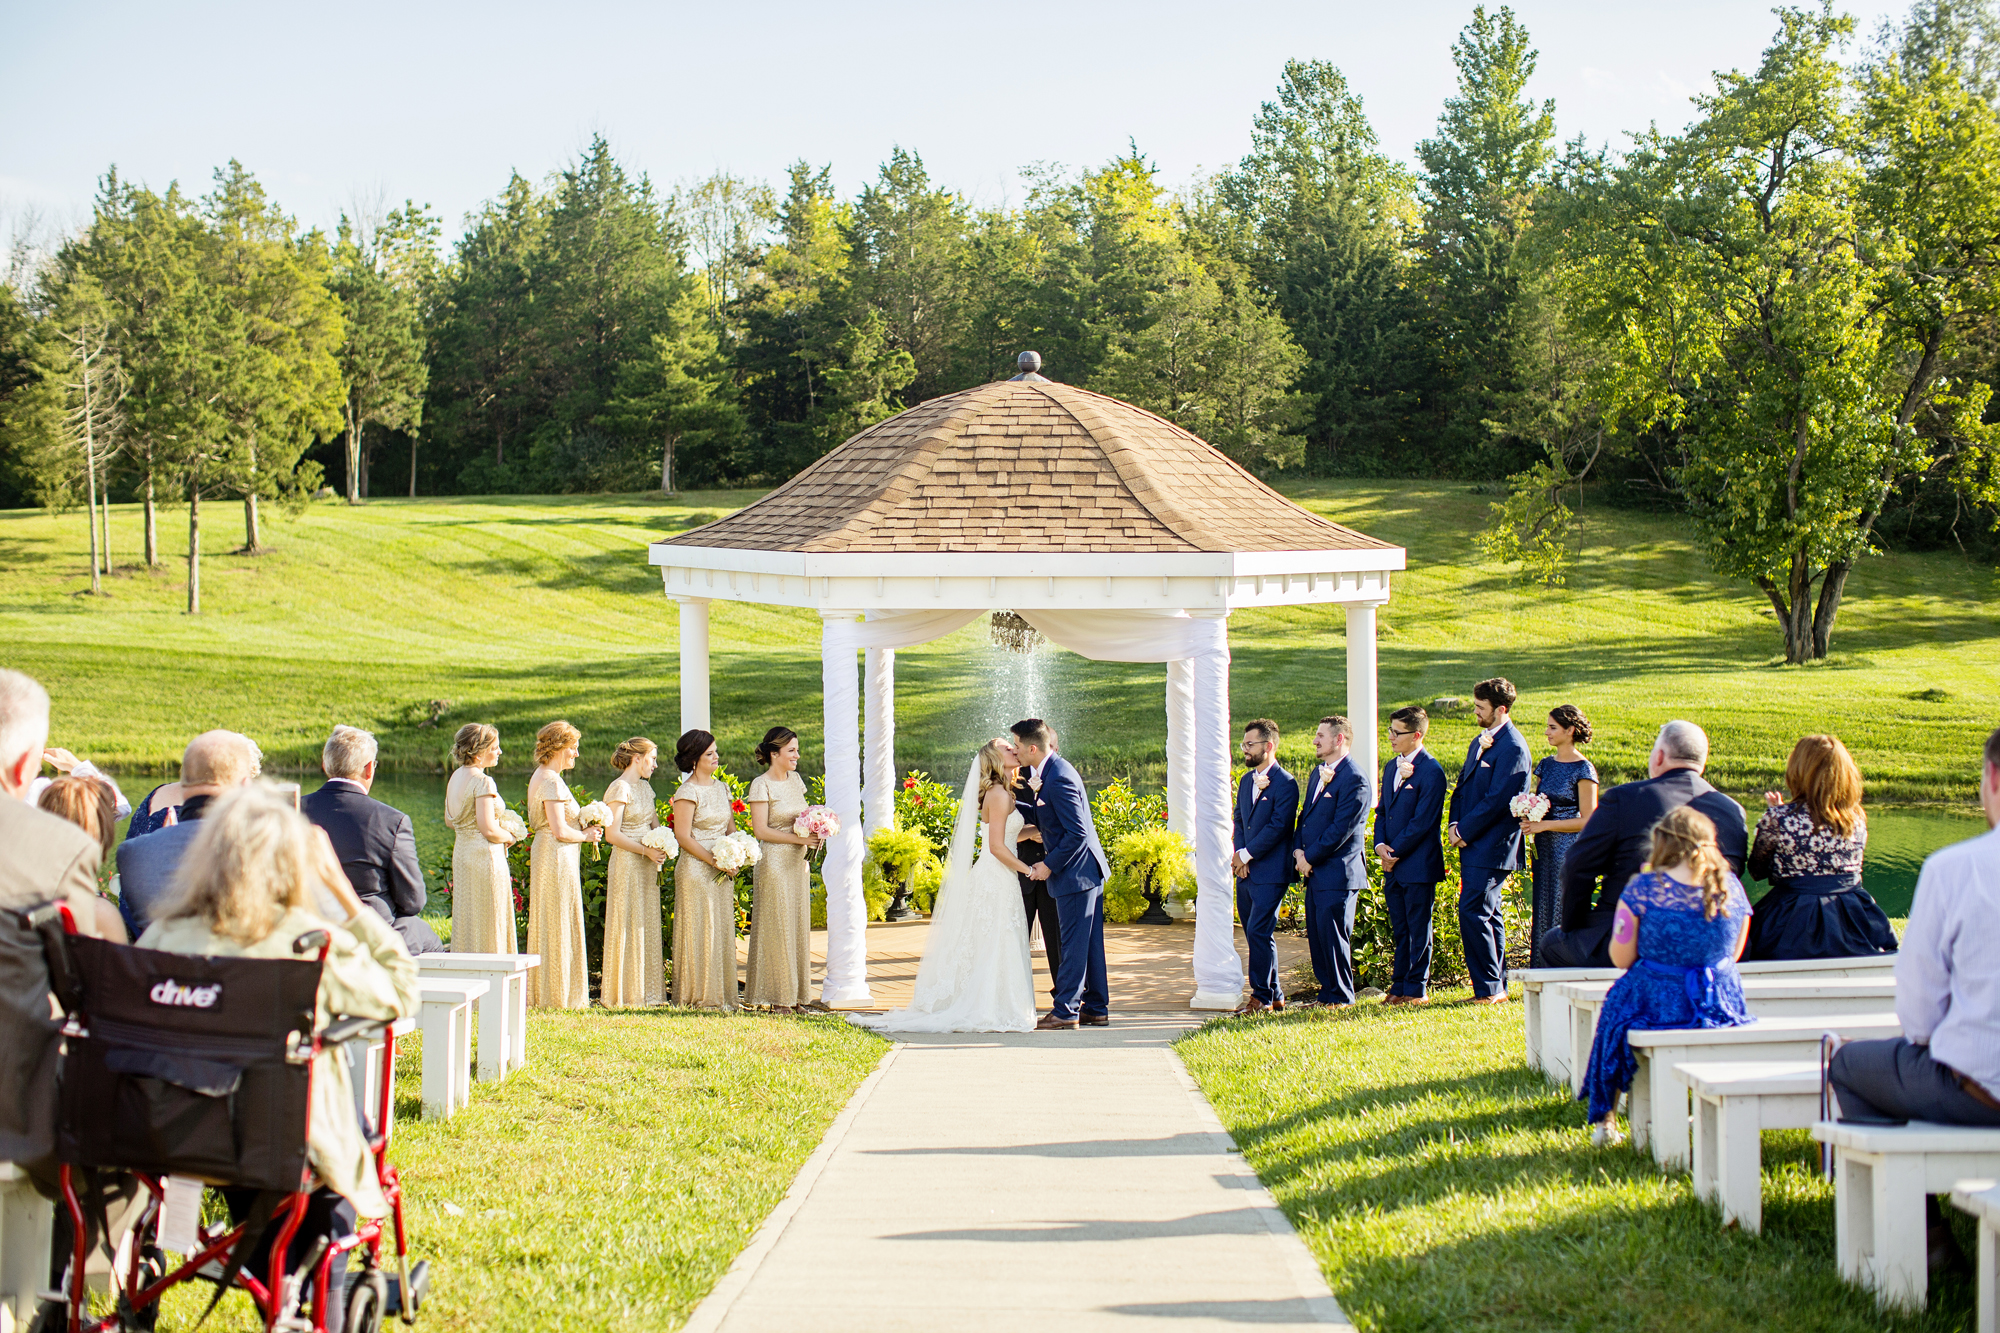 Seriously_Sabrina_Photography_Dayton_Ohio_Great_Gatsby_Wedding_Cedar_Springs_Pavillion_Harper_59.jpg